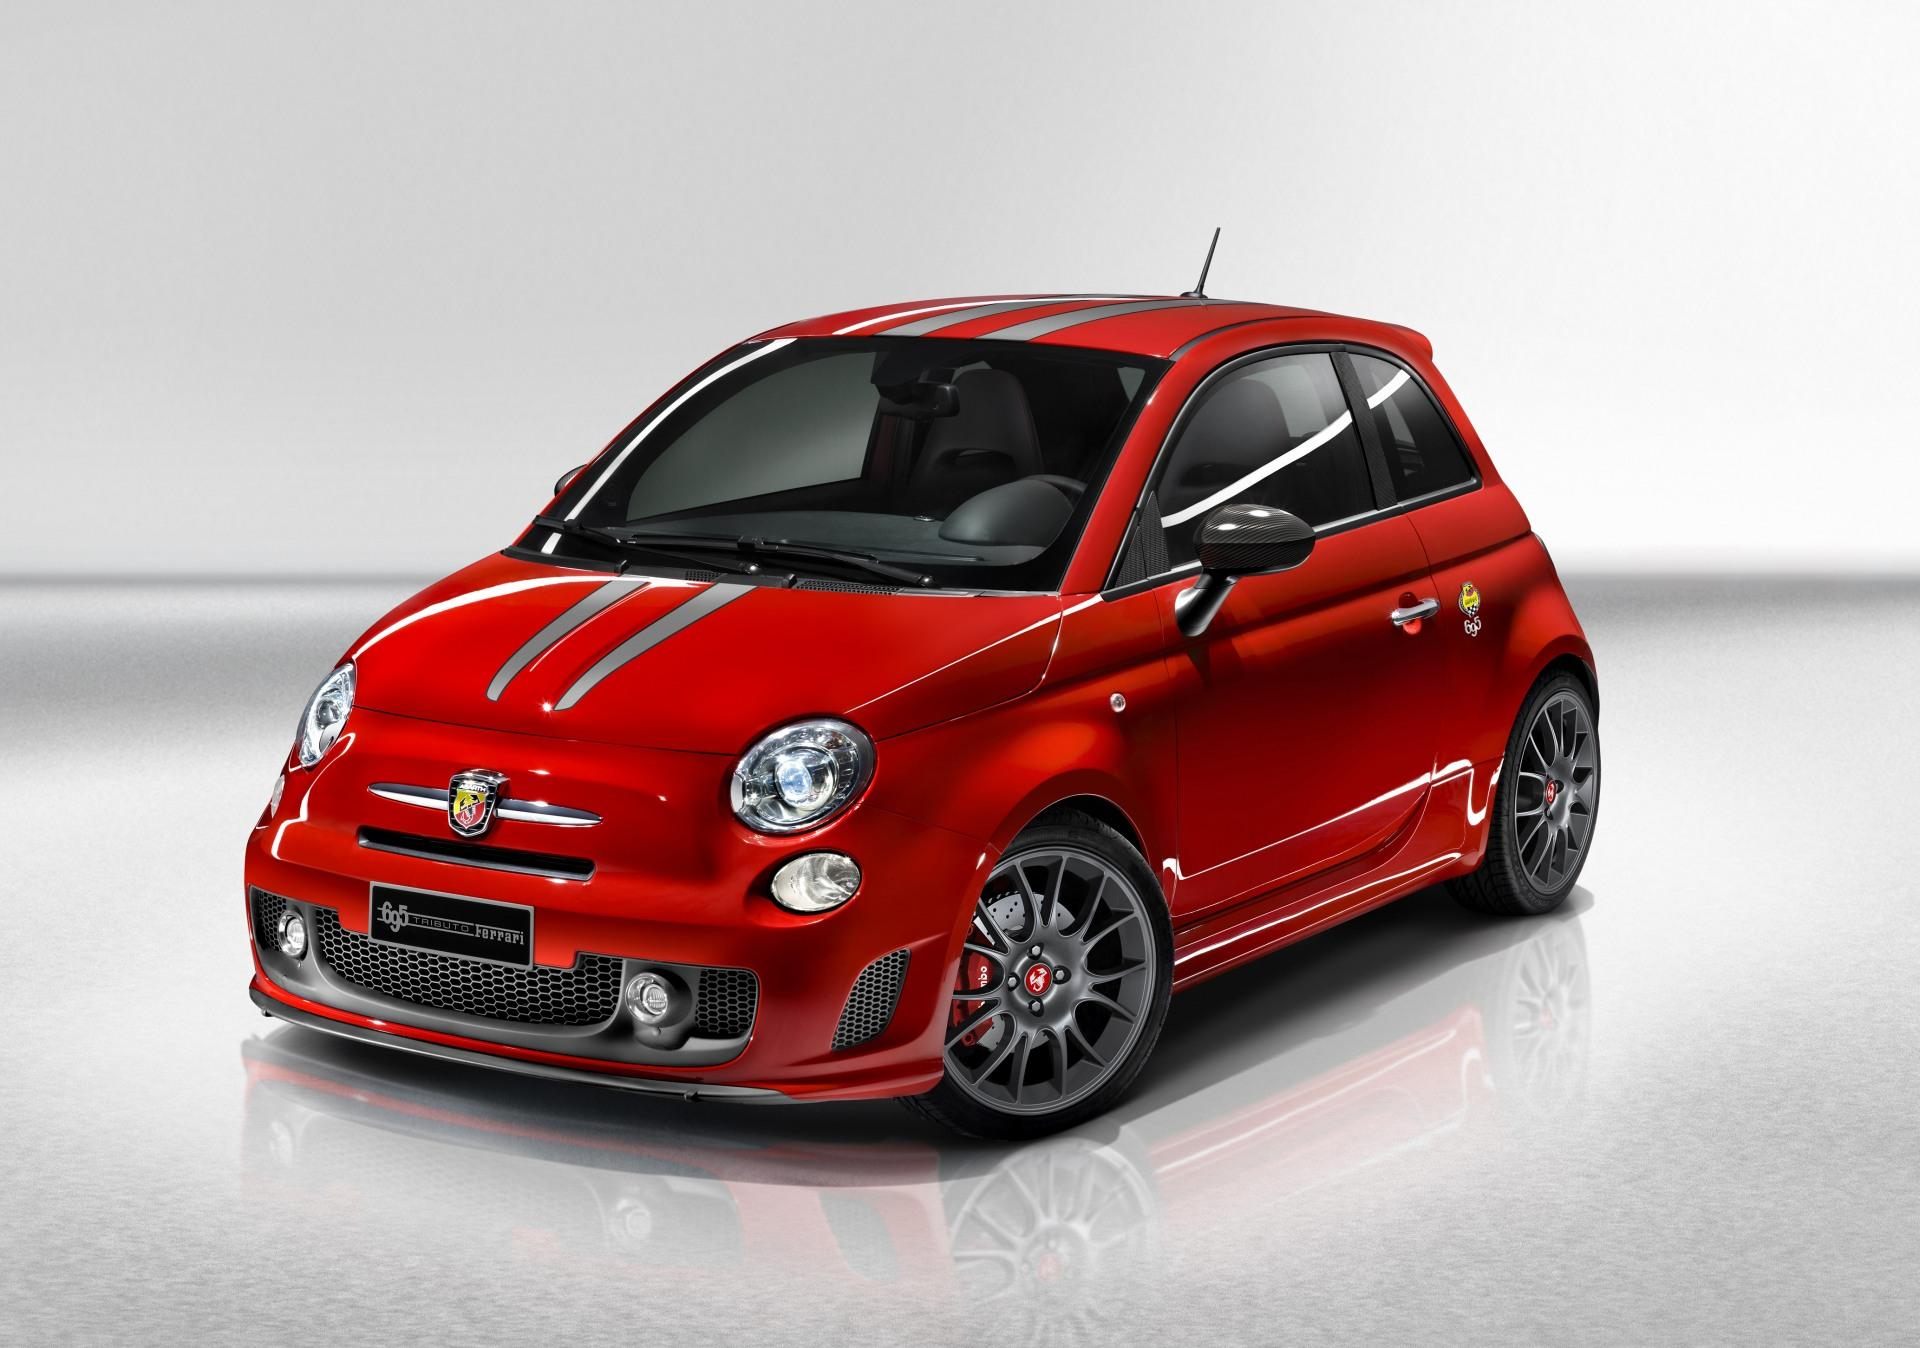 2010 abarth 695 tributo ferrari. Black Bedroom Furniture Sets. Home Design Ideas